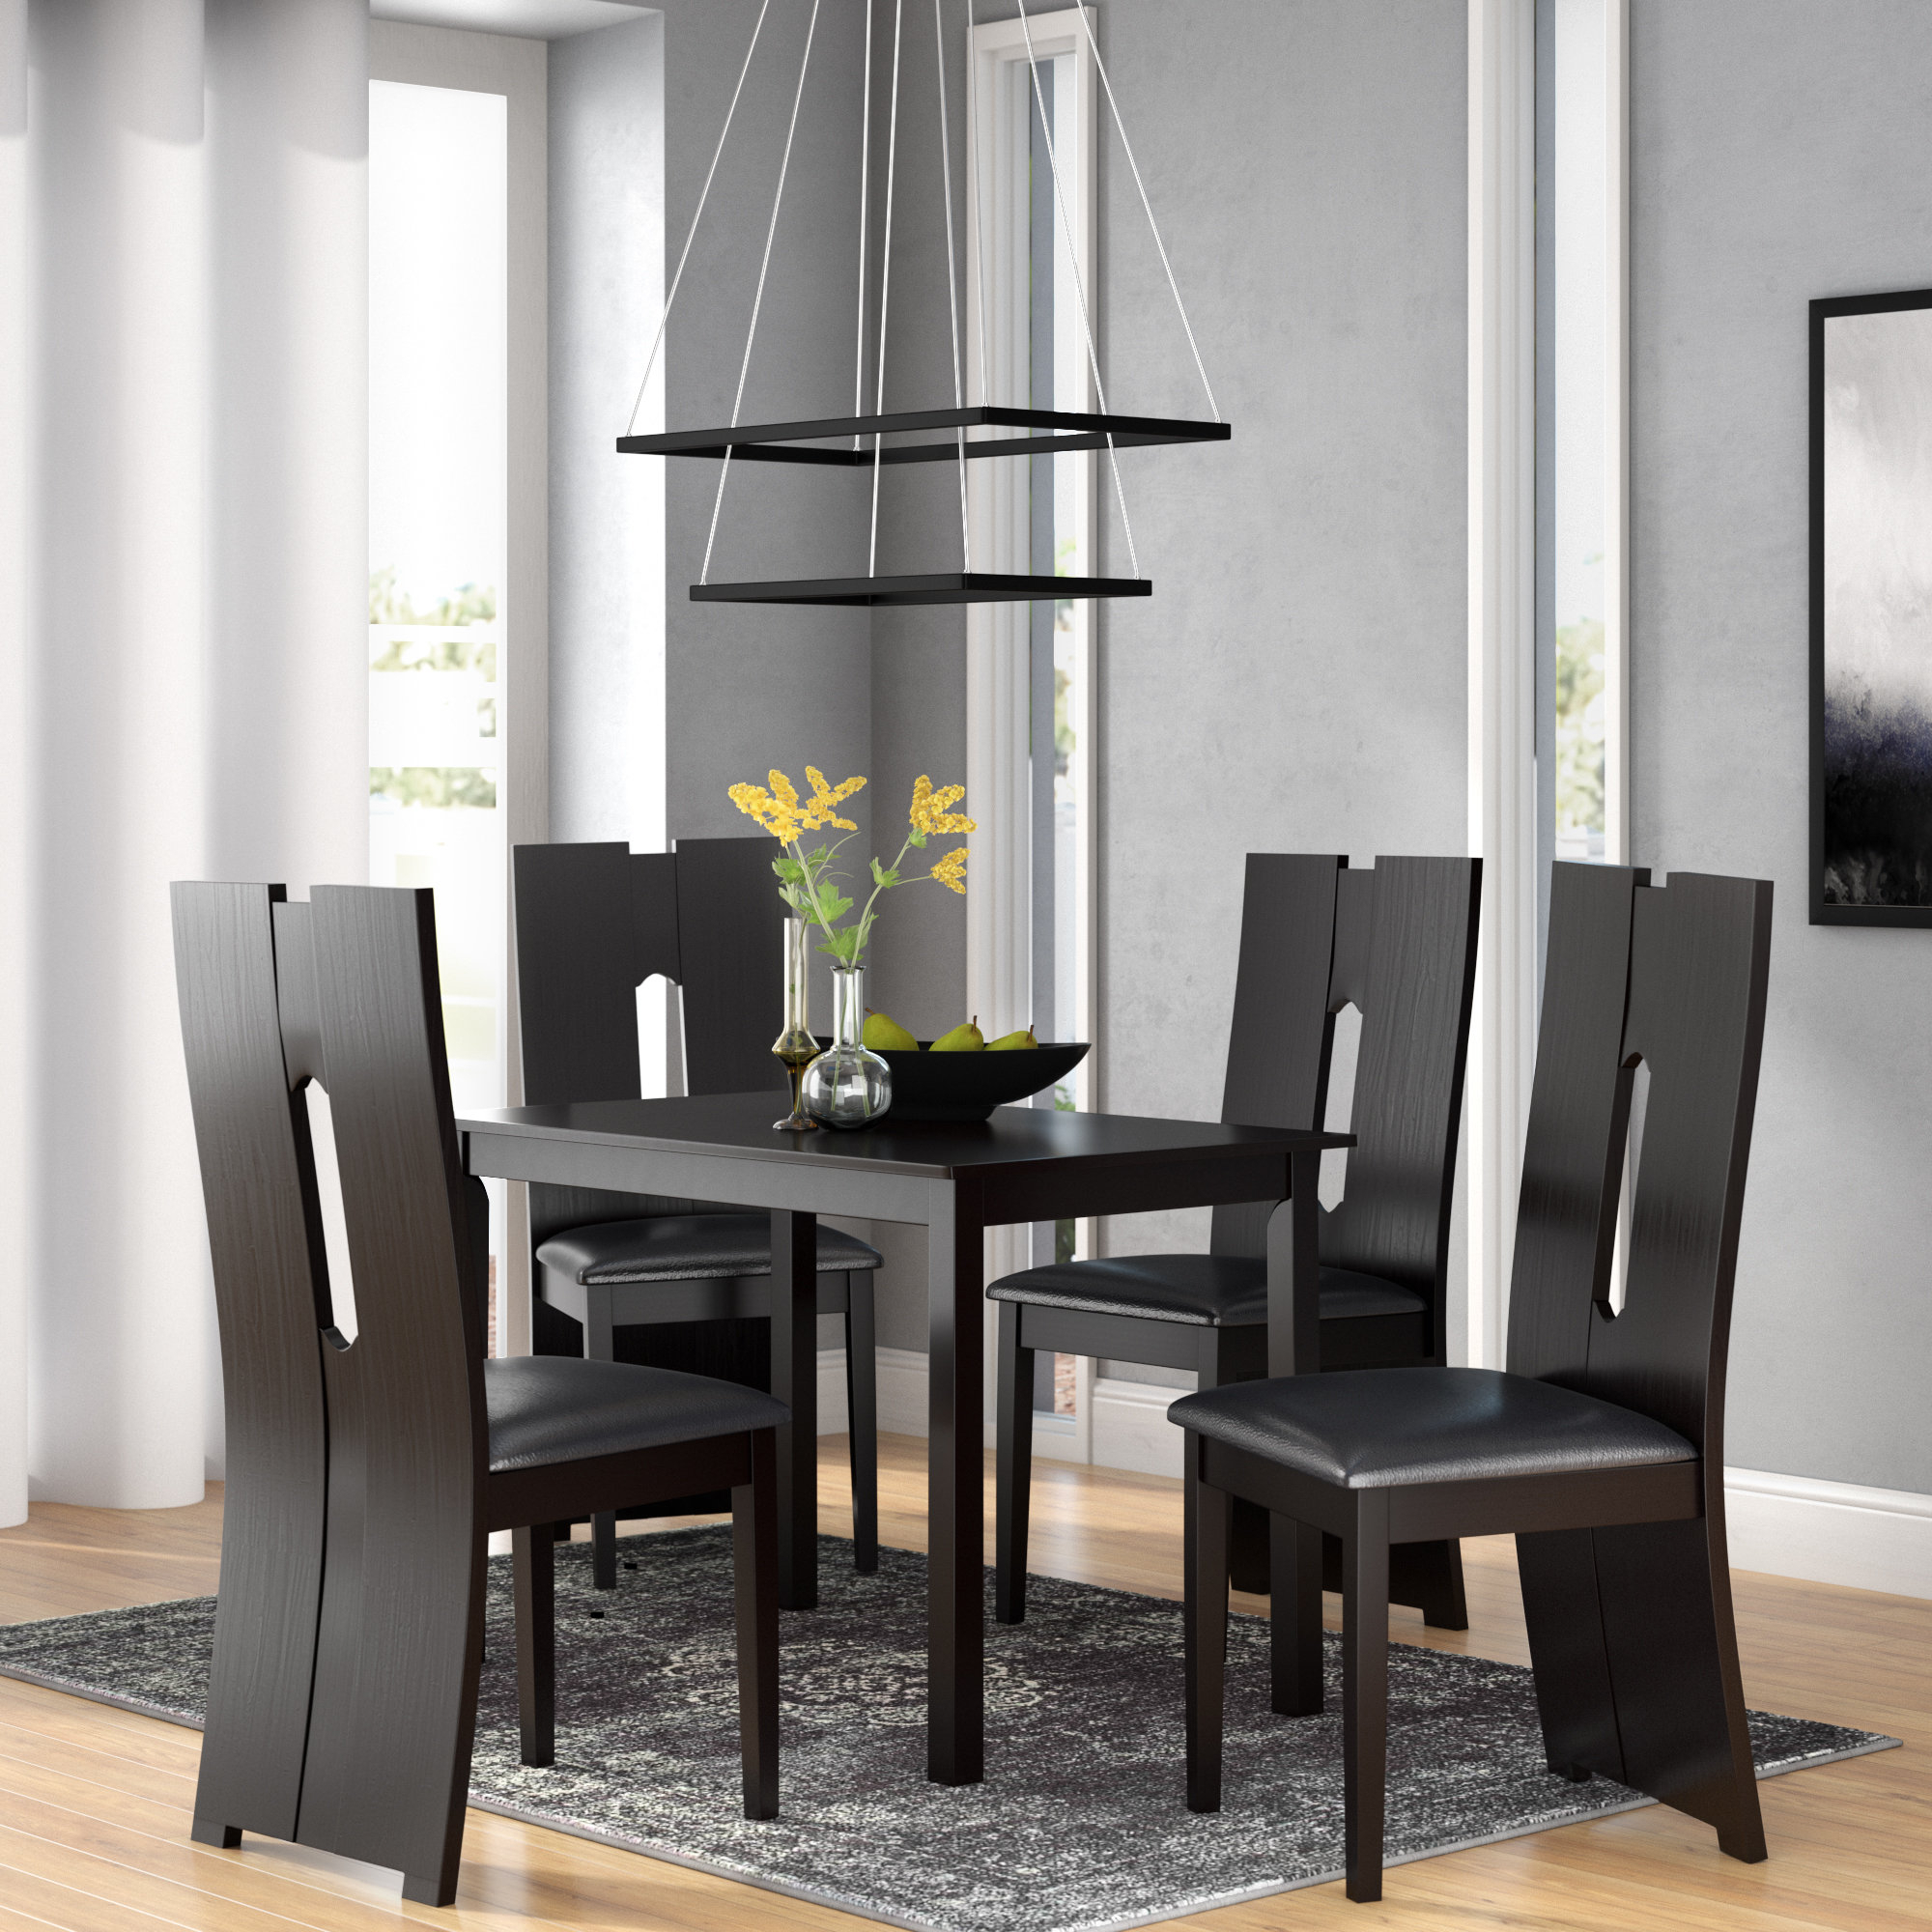 Orren Ellis Onsted Modern And Contemporary 5 Piece Breakfast Nook Within Current 5 Piece Breakfast Nook Dining Sets (View 16 of 25)